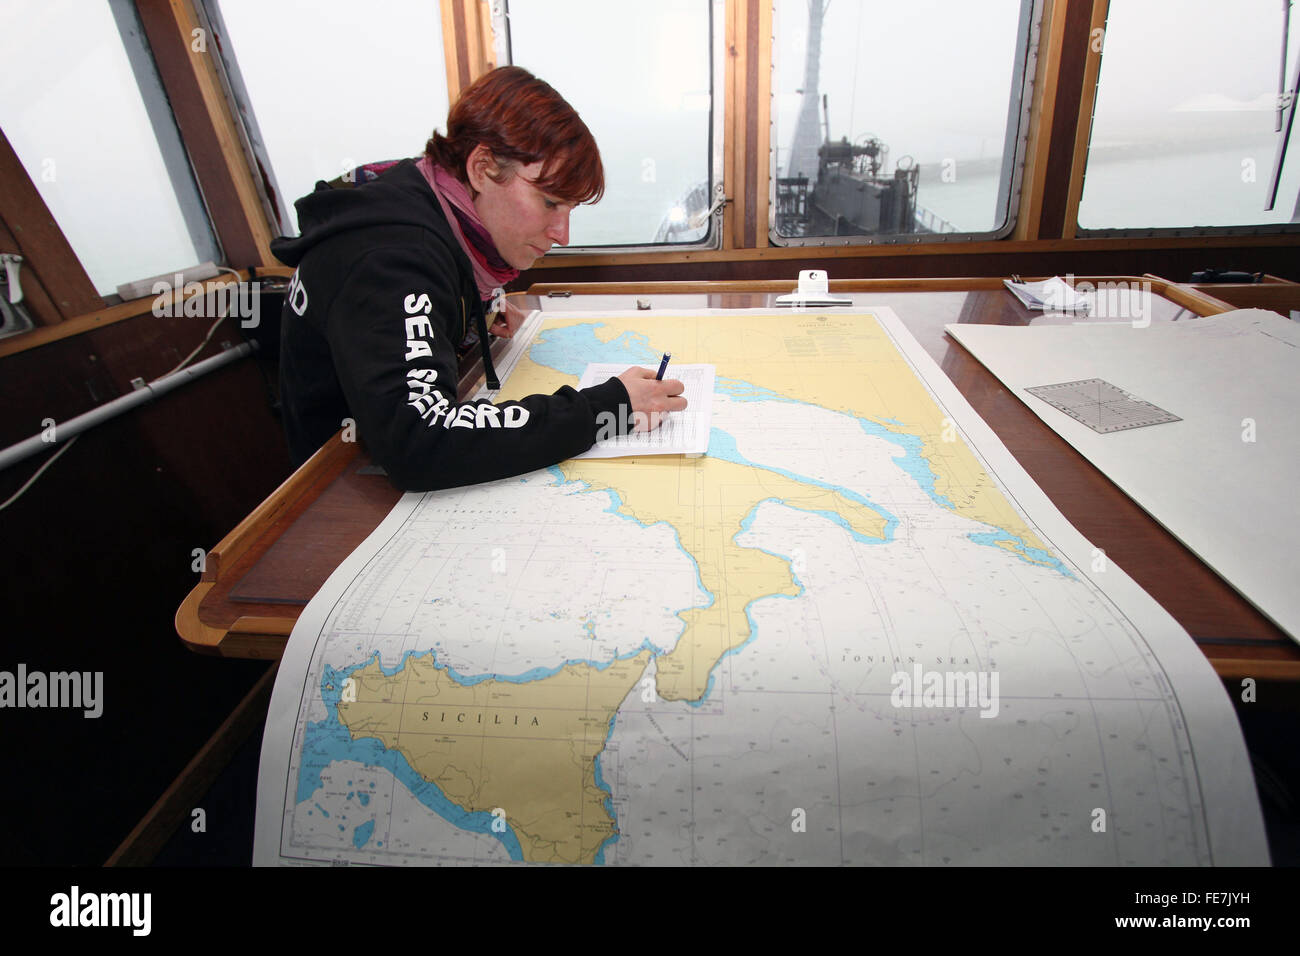 Venice, Italy. 3rd February, 2016. A member of crew of the Bob Barker ship with navigation chart in the control - Stock Image